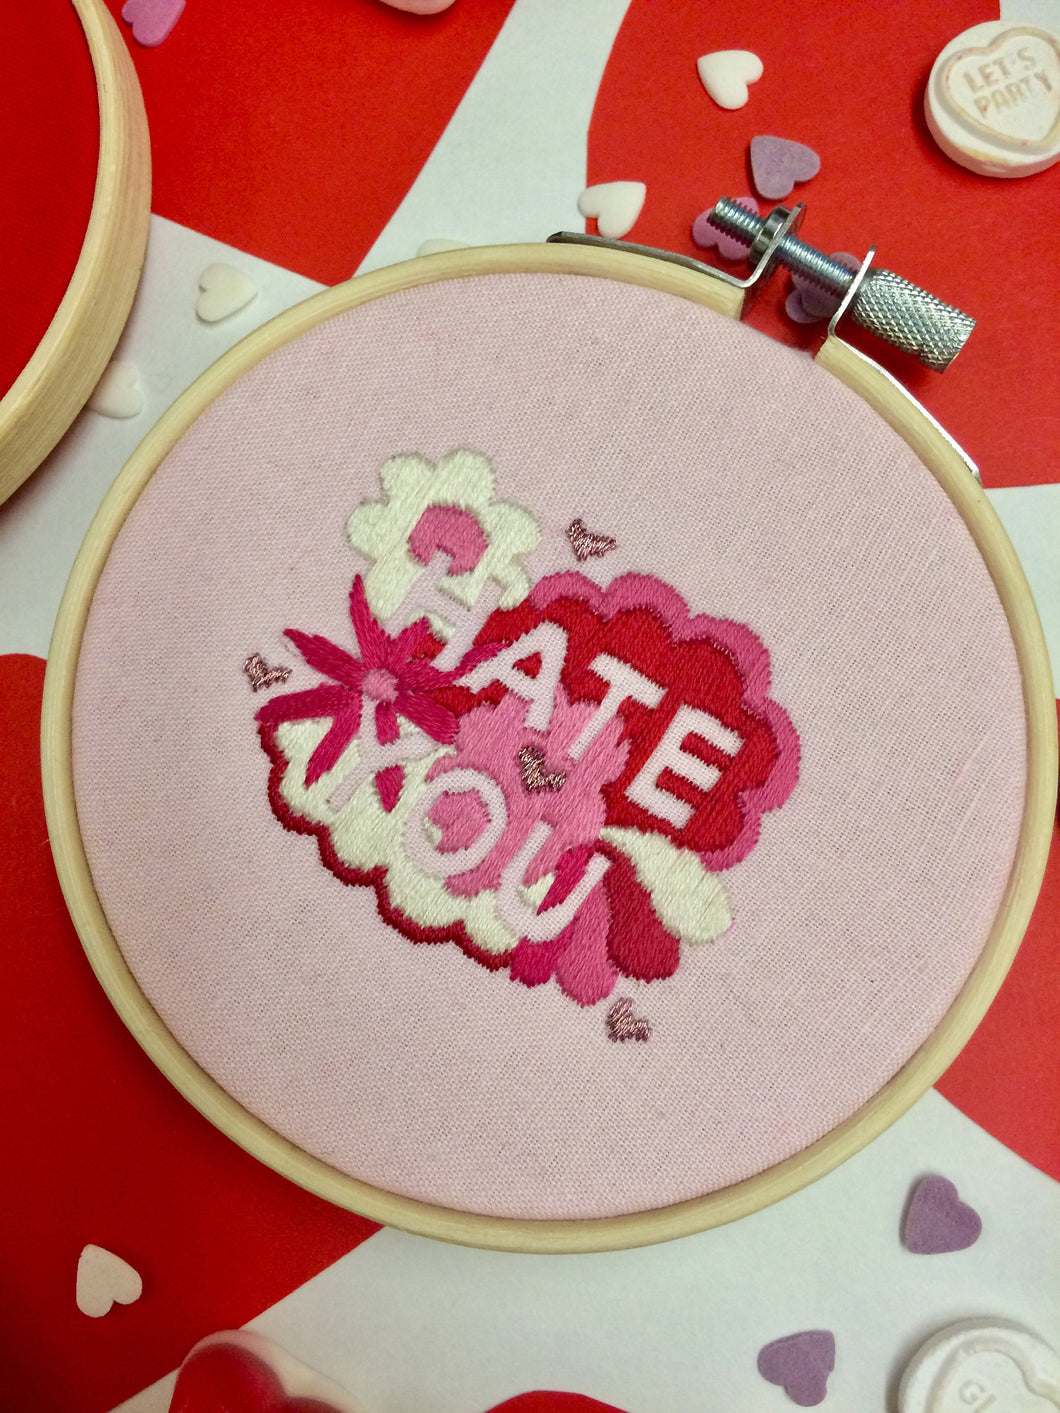 Hate You Valentines Hand Embroidery